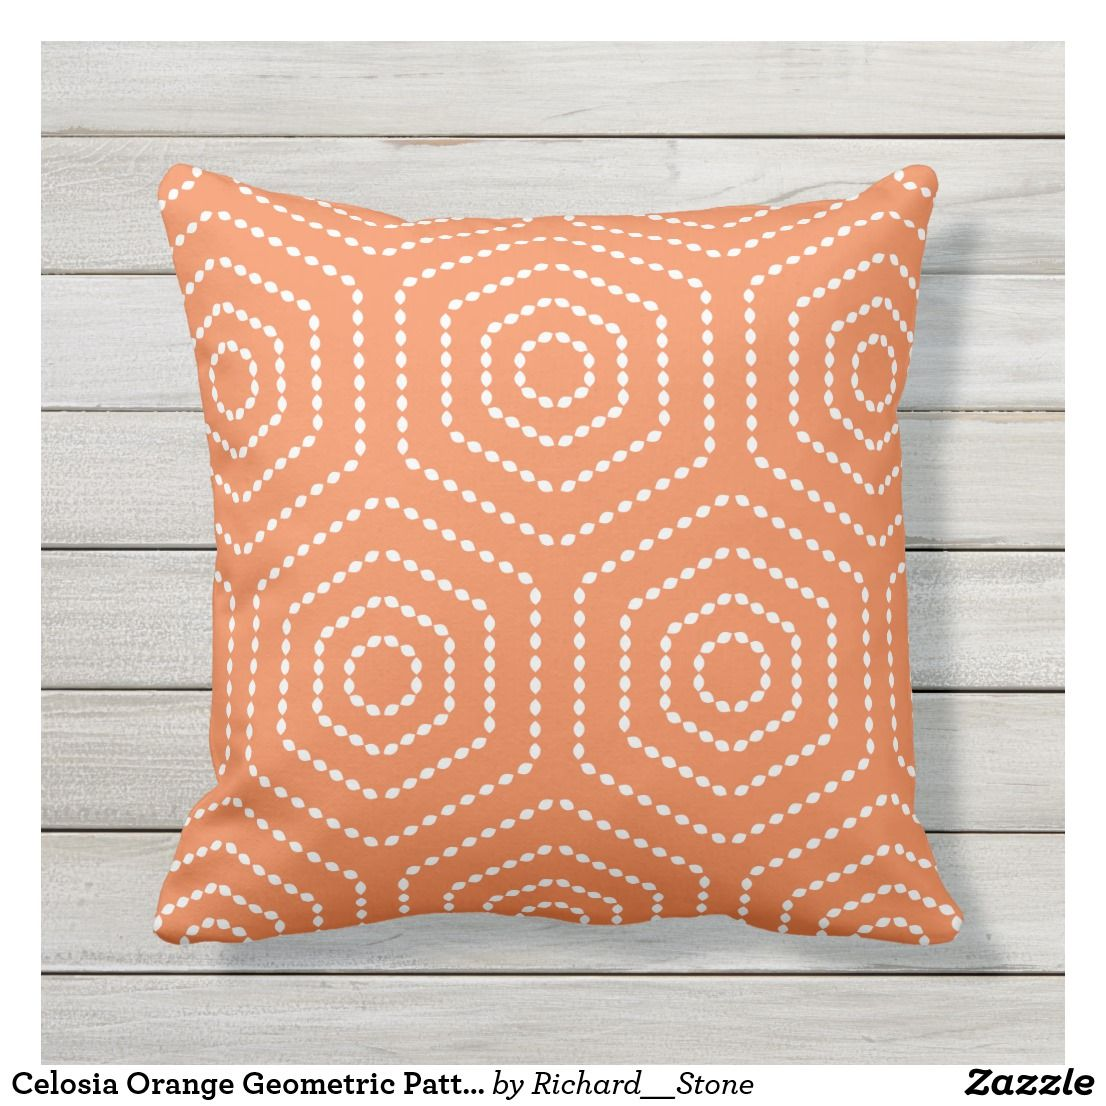 Celosia Orange Geometric Pattern Pillow Zazzle Com Throw Pillows Outdoor Pillows Geometric Pattern